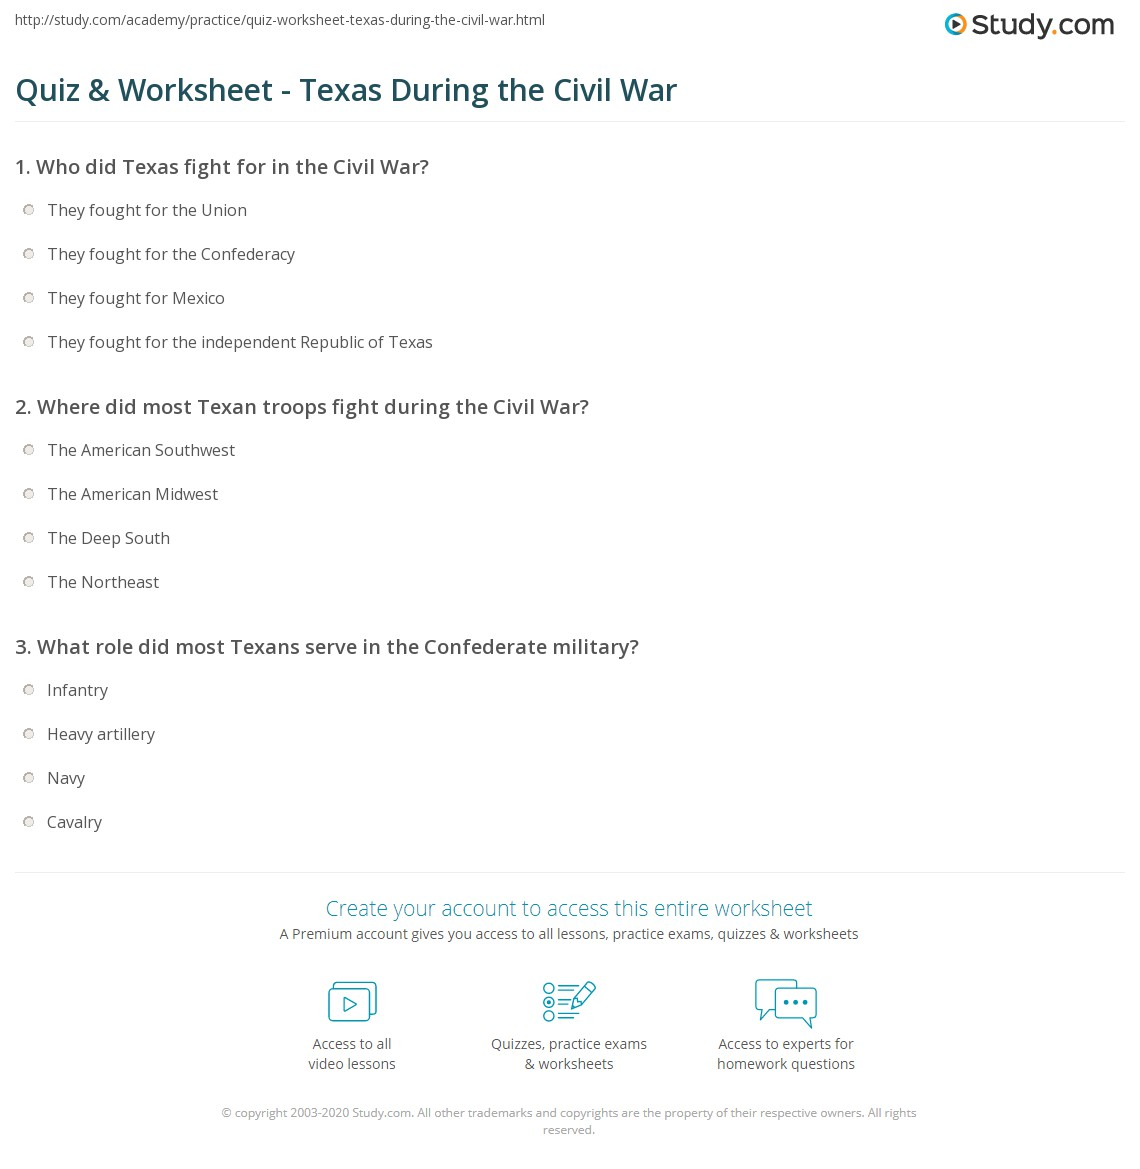 Quiz & Worksheet - Texas During the Civil War | Study.com